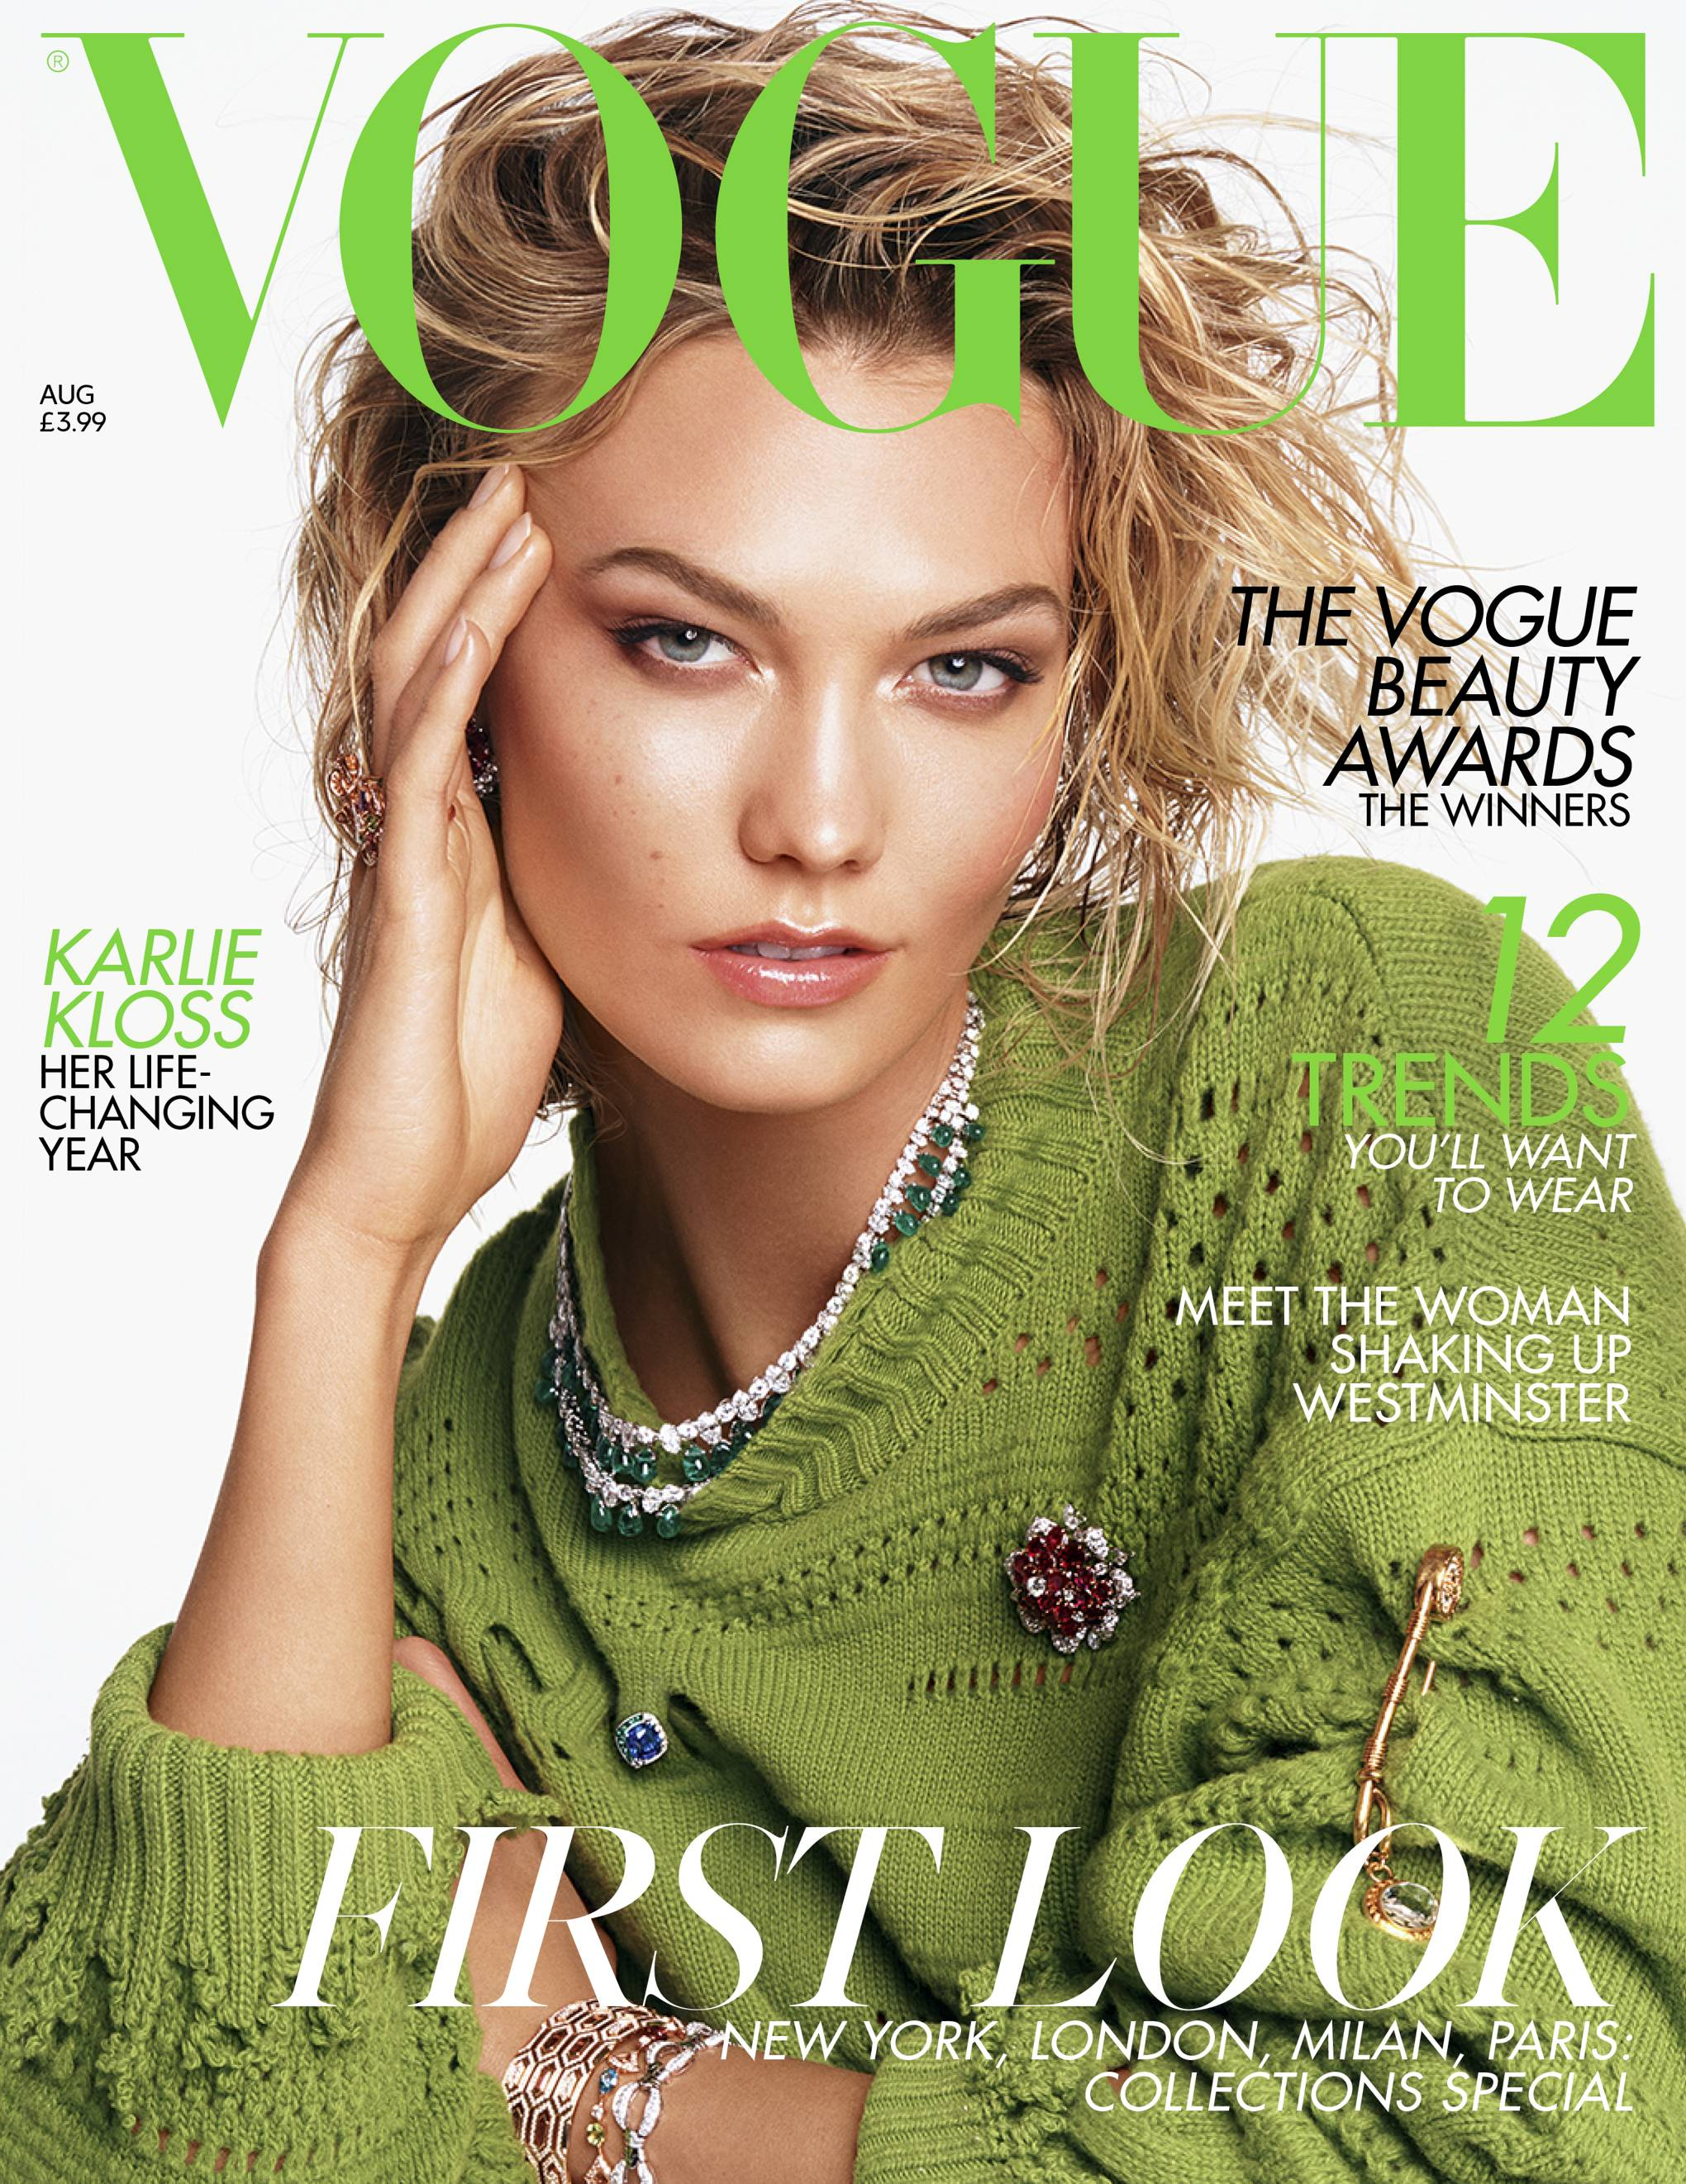 a1bc2f04c Karlie Kloss Covers The August 2019 Issue Of British Vogue | British Vogue